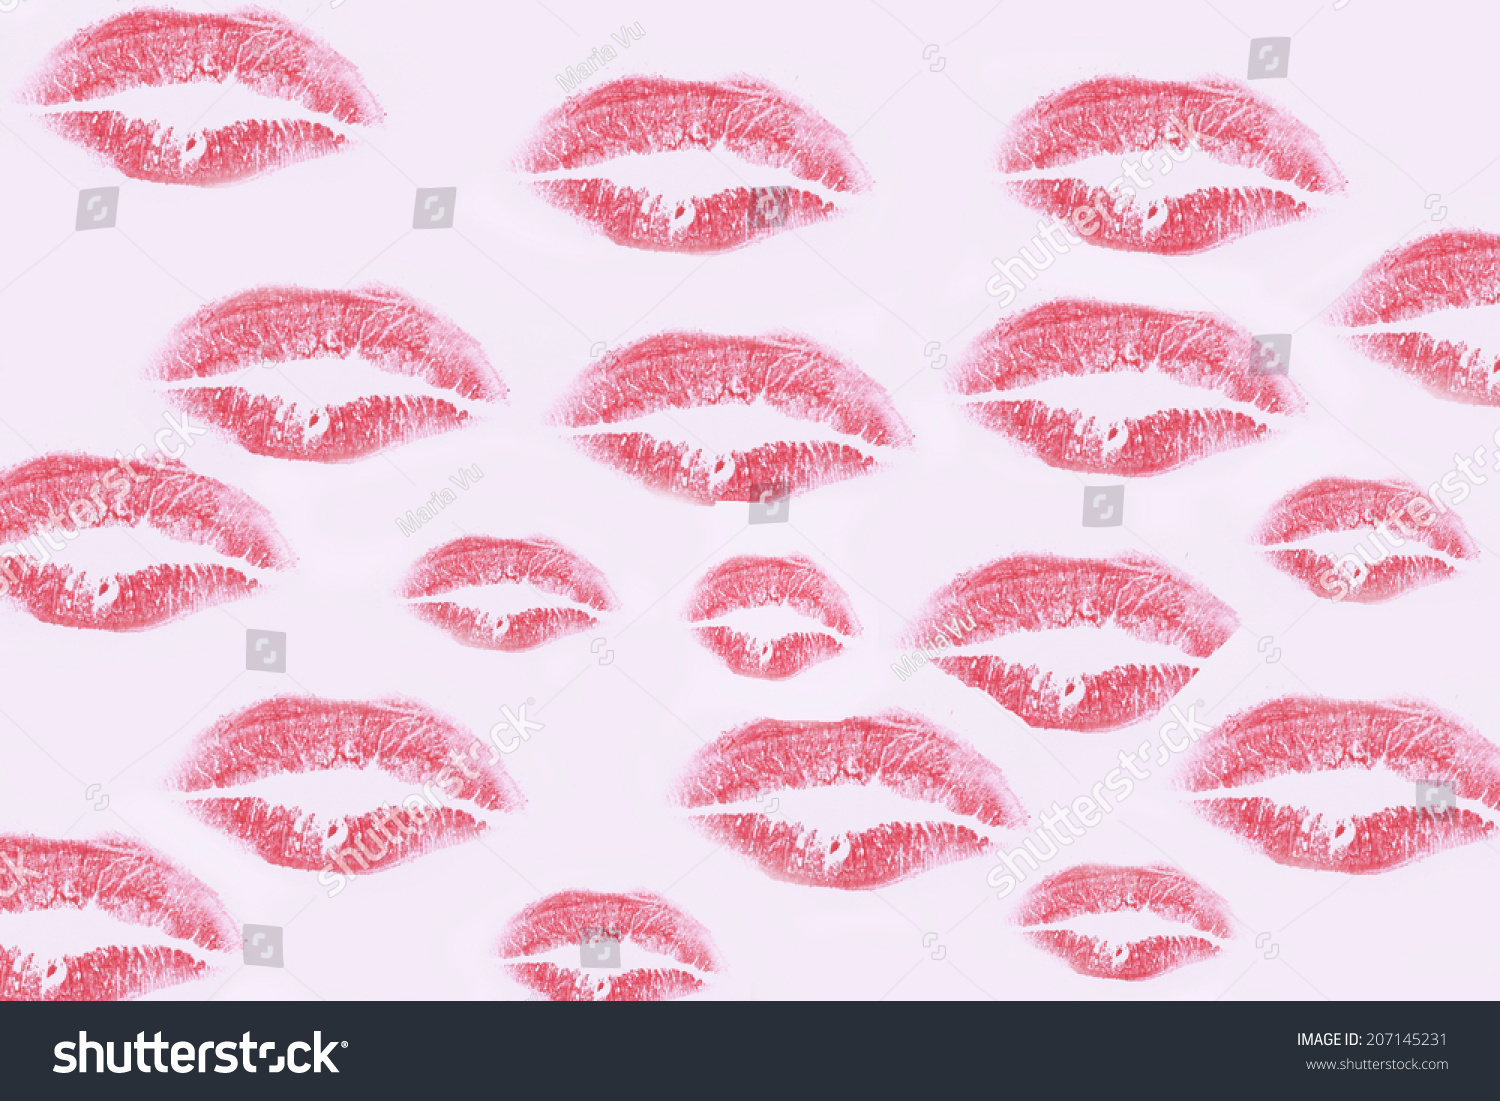 wallpaper red kisses pink lipstick background stock photo (royalty